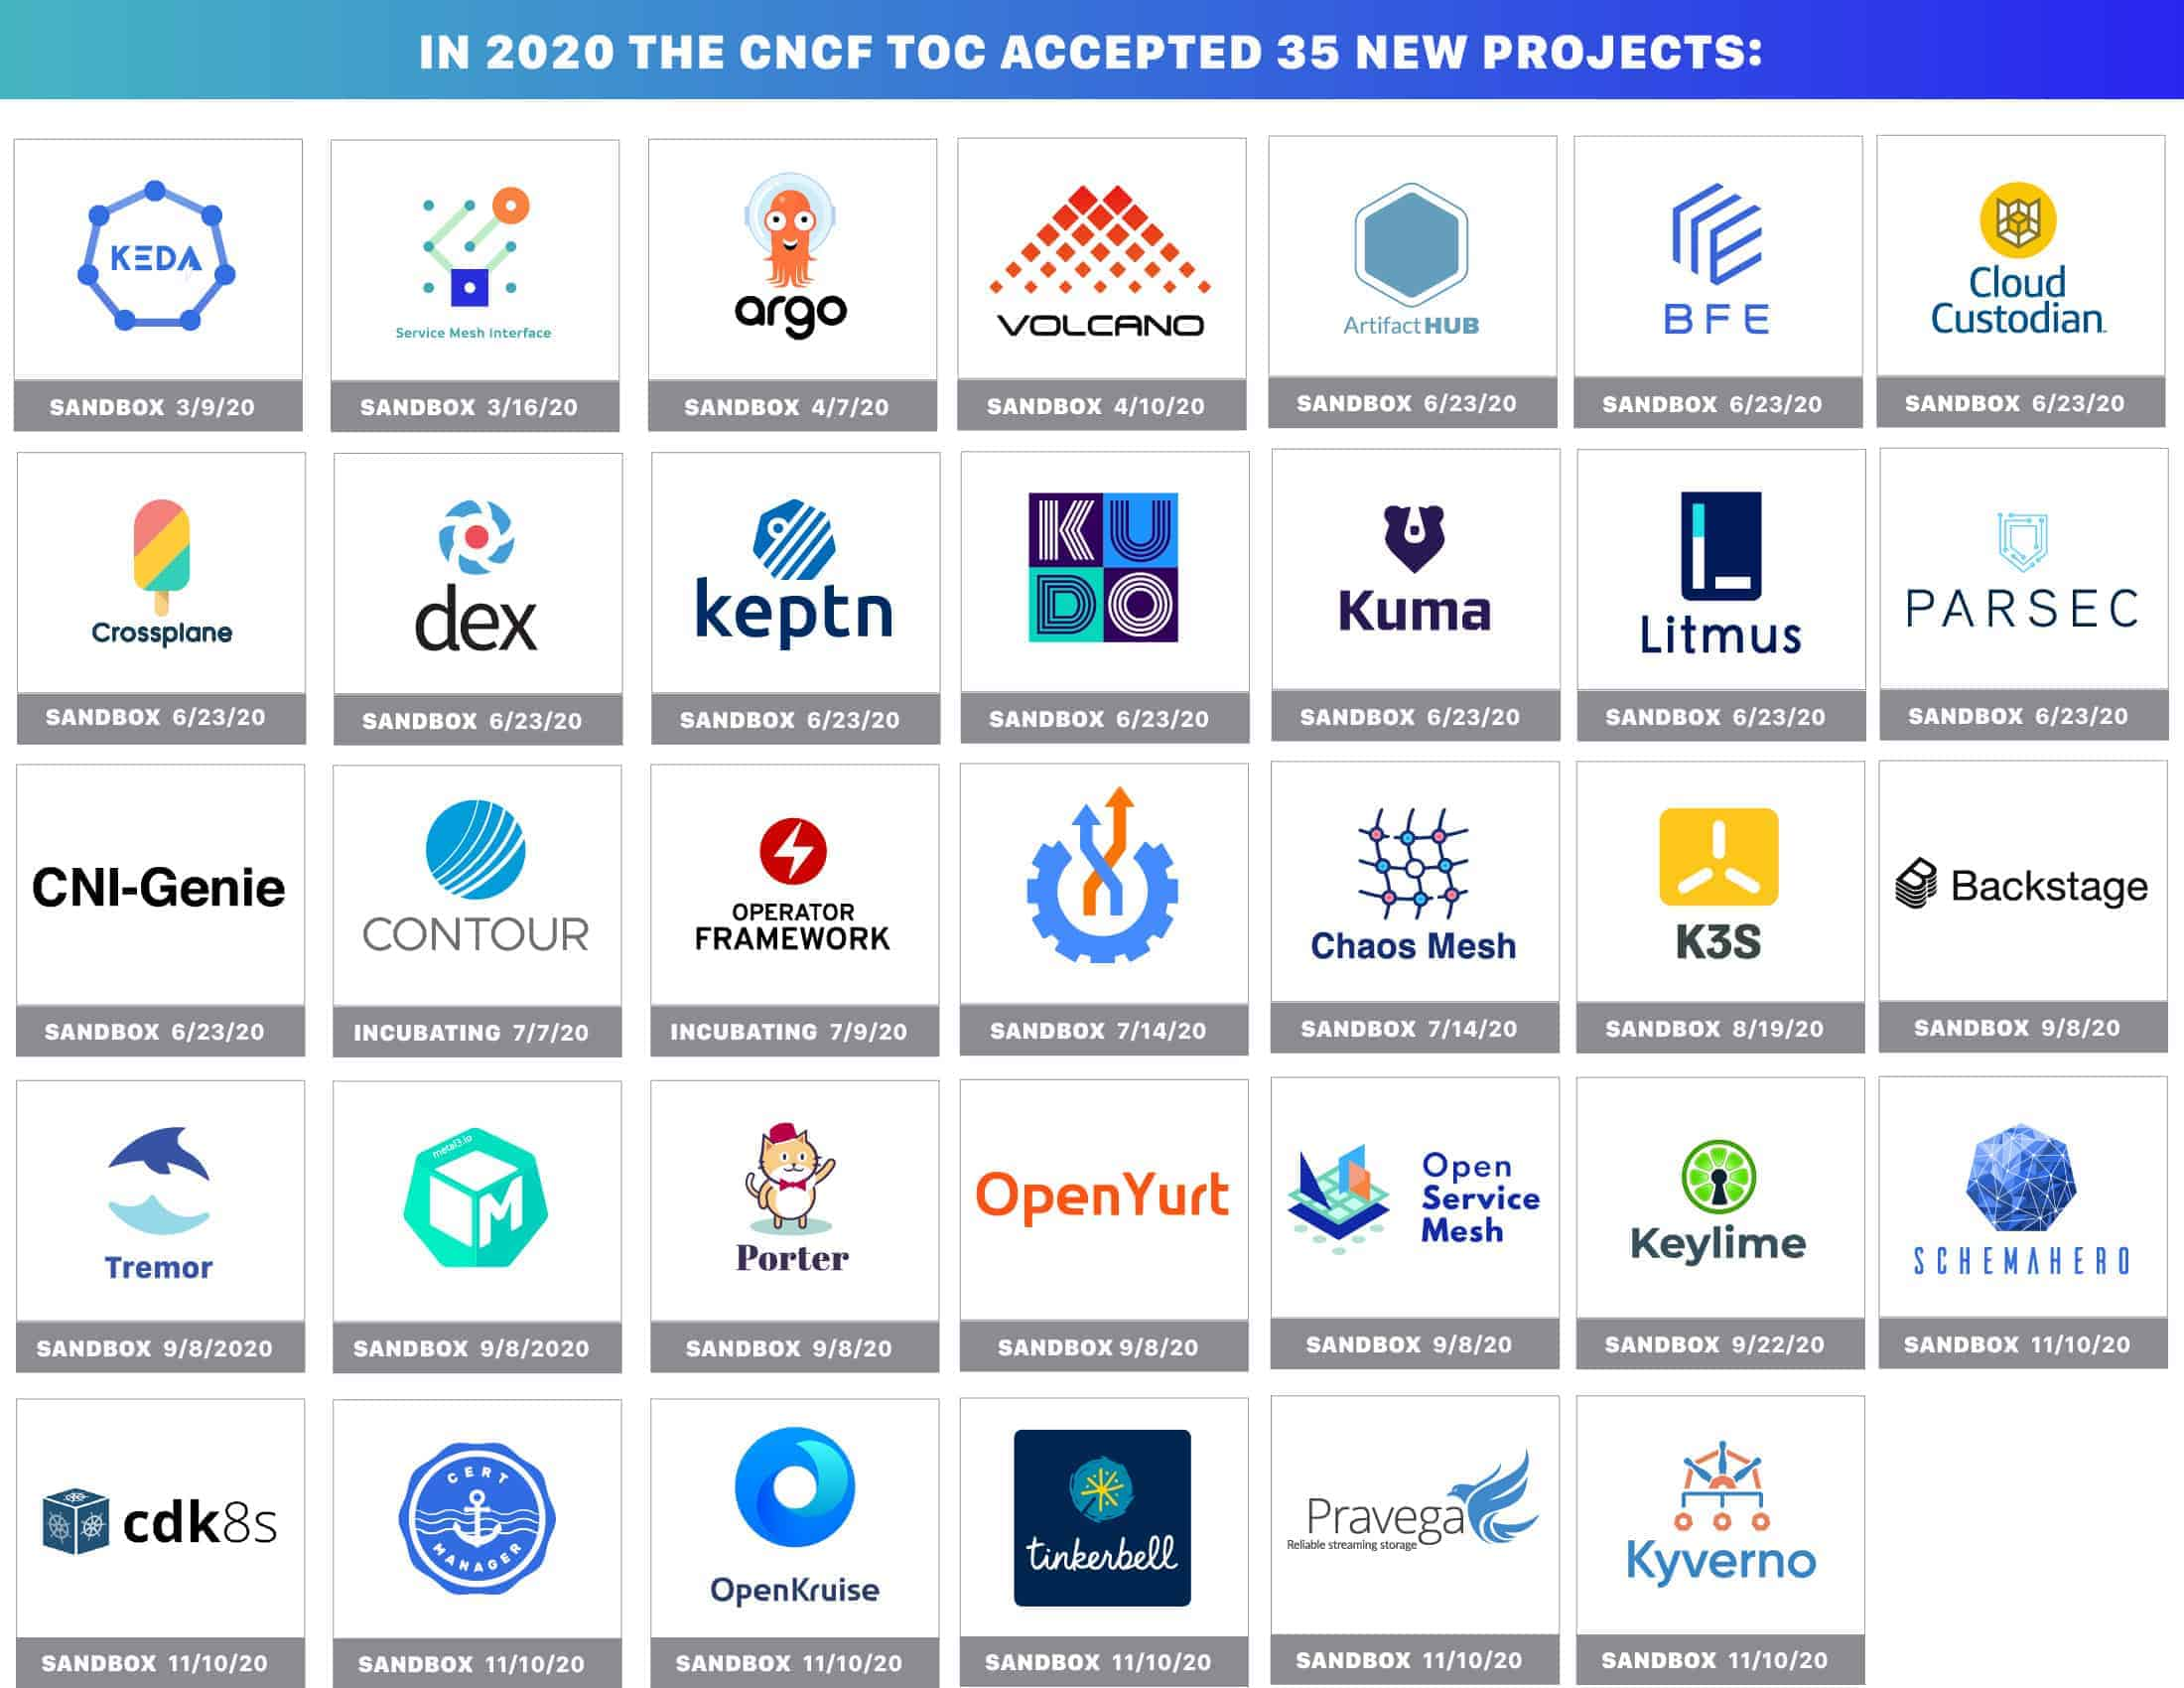 35 new projects accepted in 2020